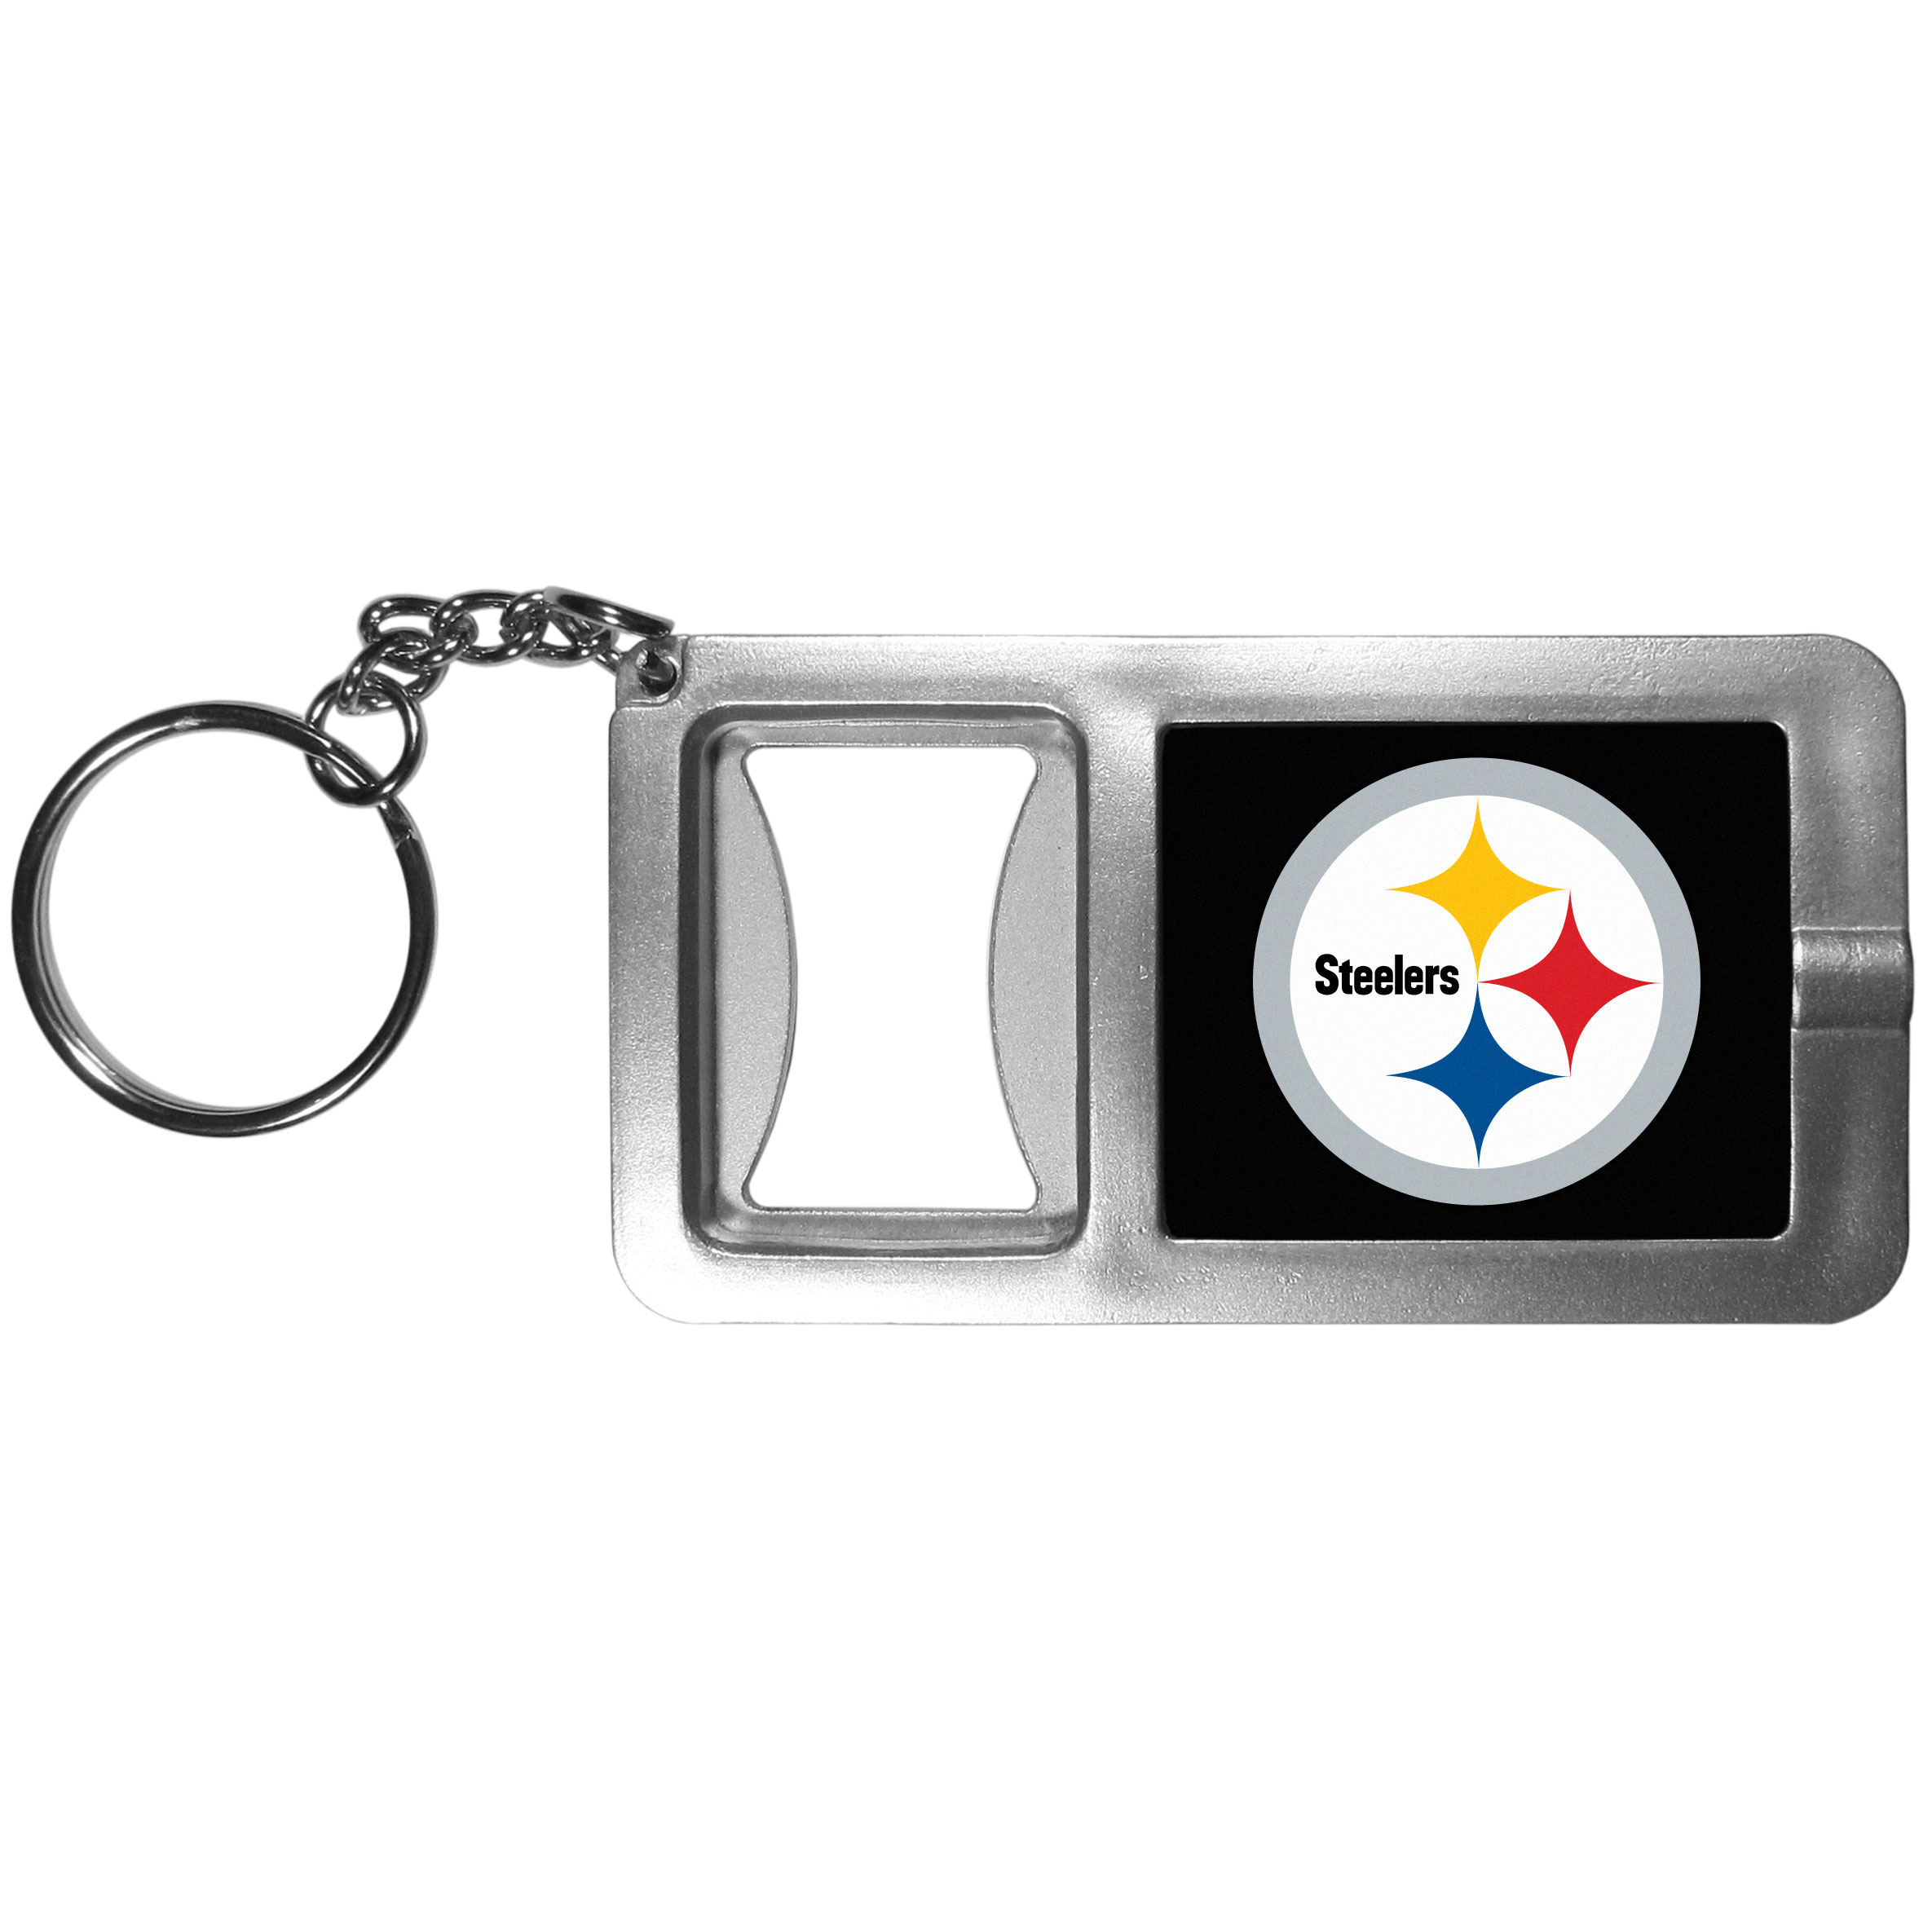 Pittsburgh Steelers Flashlight Key Chain with Bottle Opener - Never be without light with our Pittsburgh Steelers flashlight keychain that features a handy bottle opener feature. This versatile key chain is perfect for camping and travel and is a great way to show off your team pride!